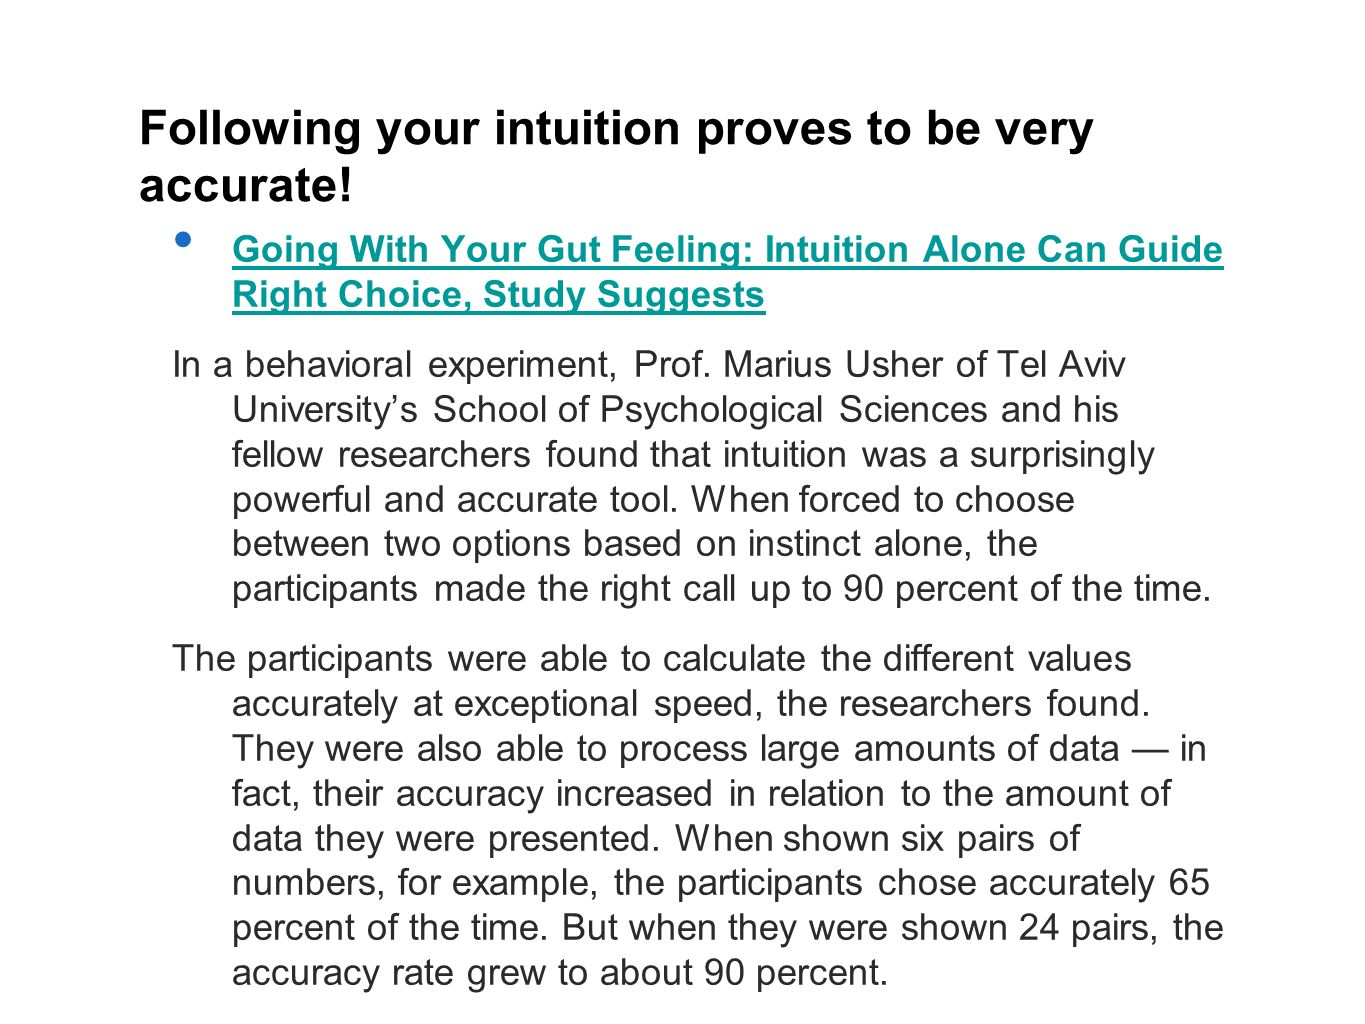 Following your intuition proves to be very accurate!